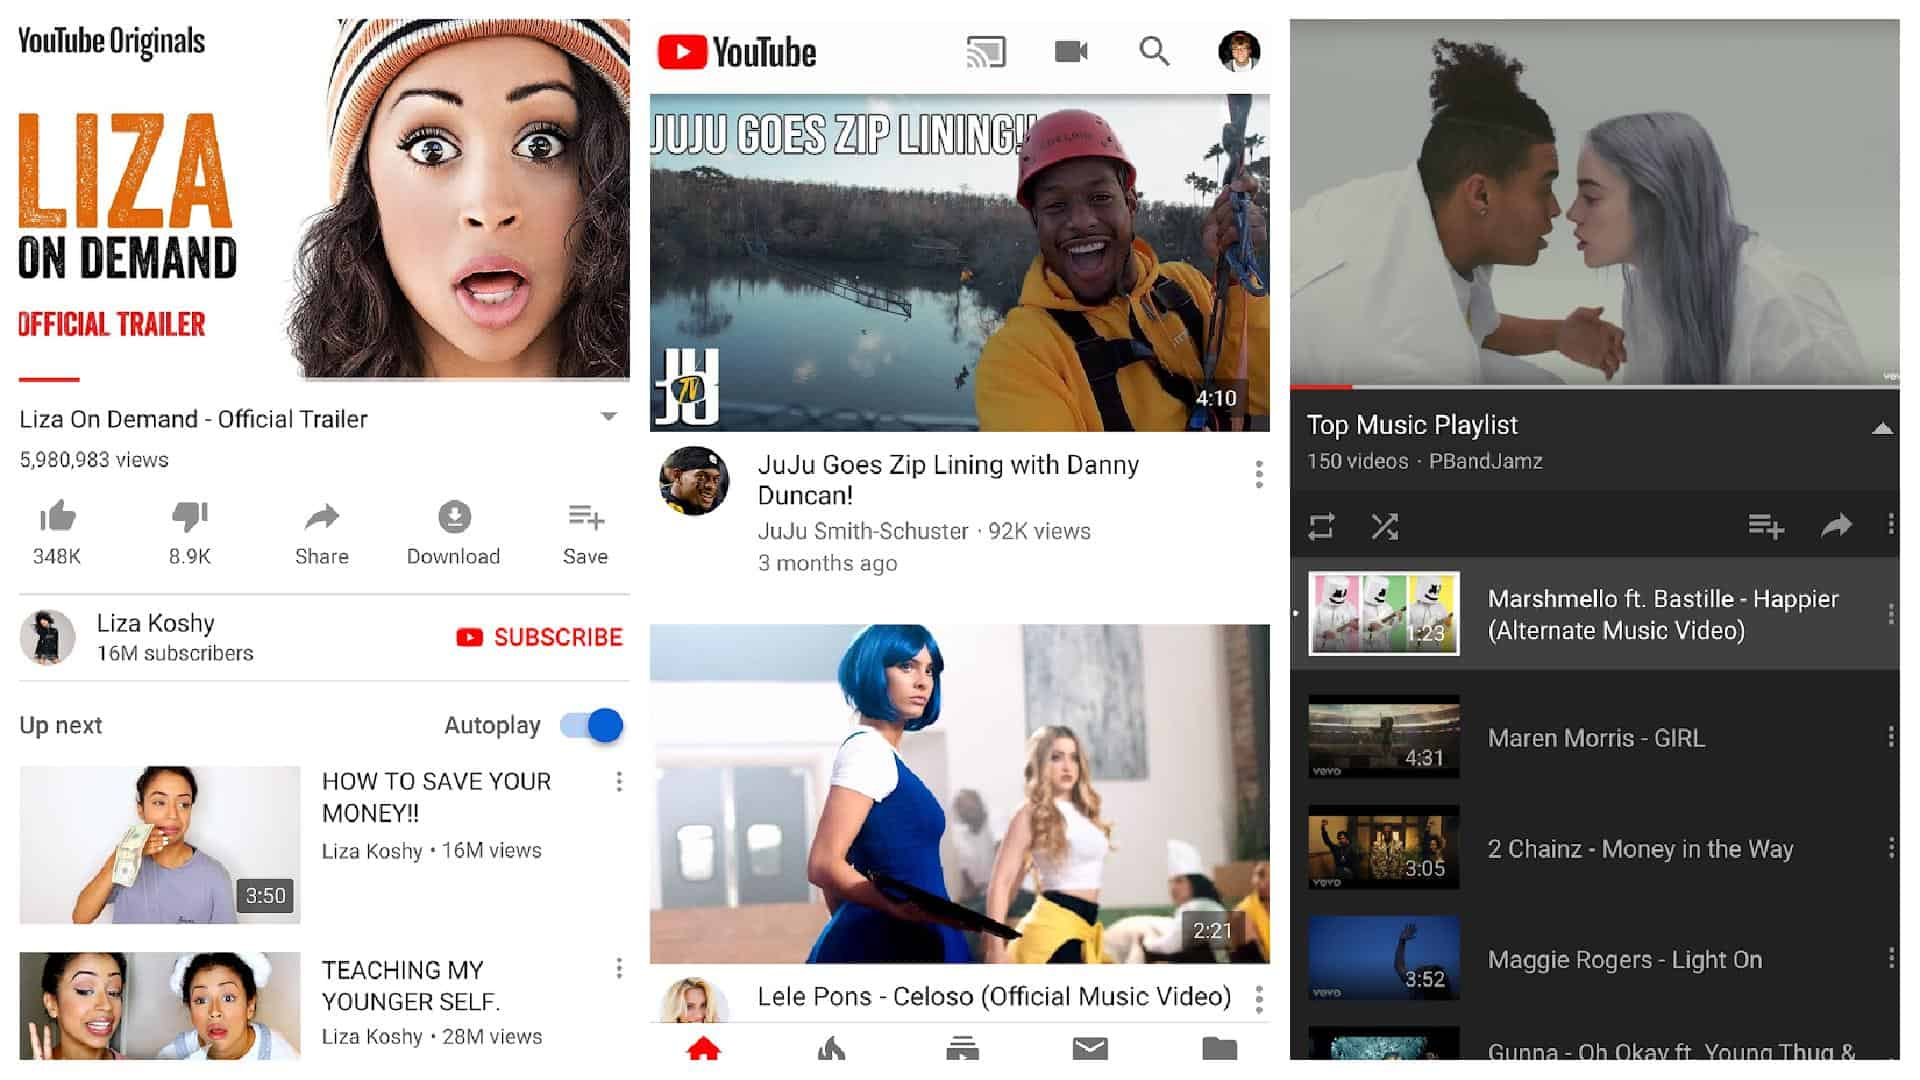 Grille d'applications YouTube 1